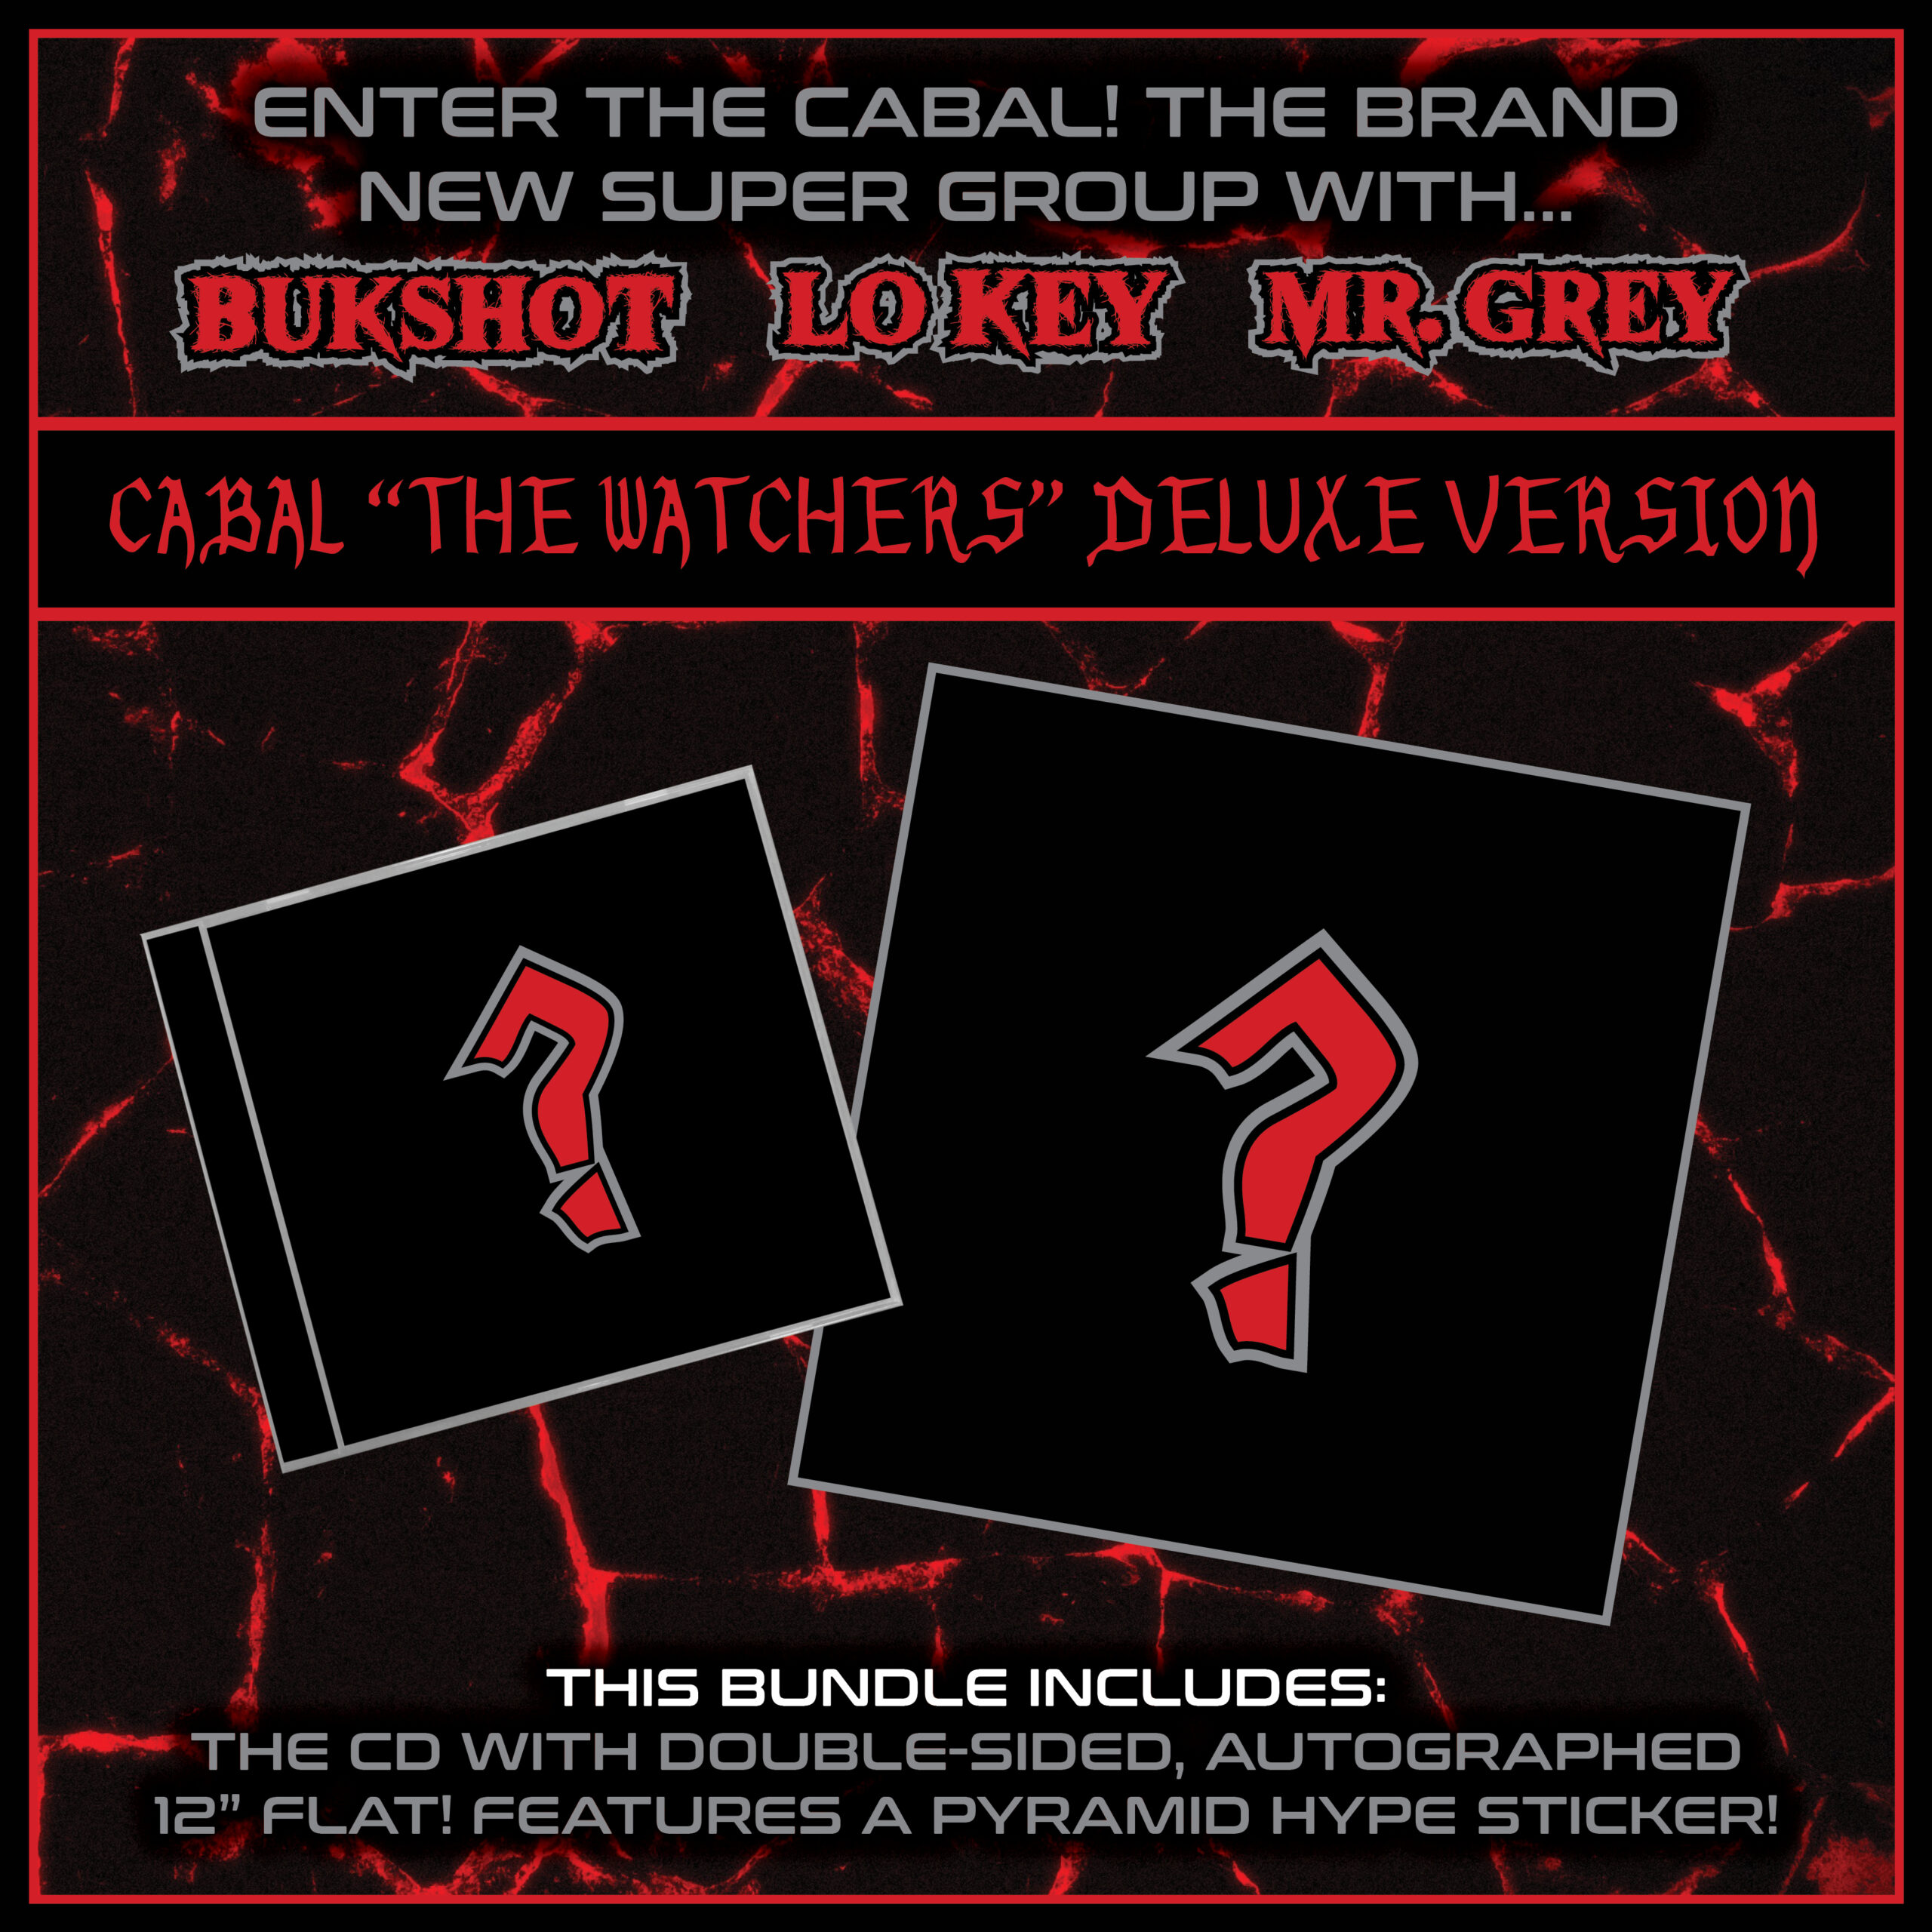 """Cabal (Bukshot, Lo Key, Mr. Grey) """"The Watchers"""" Deluxe Version CD + 12"""" Autographed Flat! [PRE-ORDER]"""